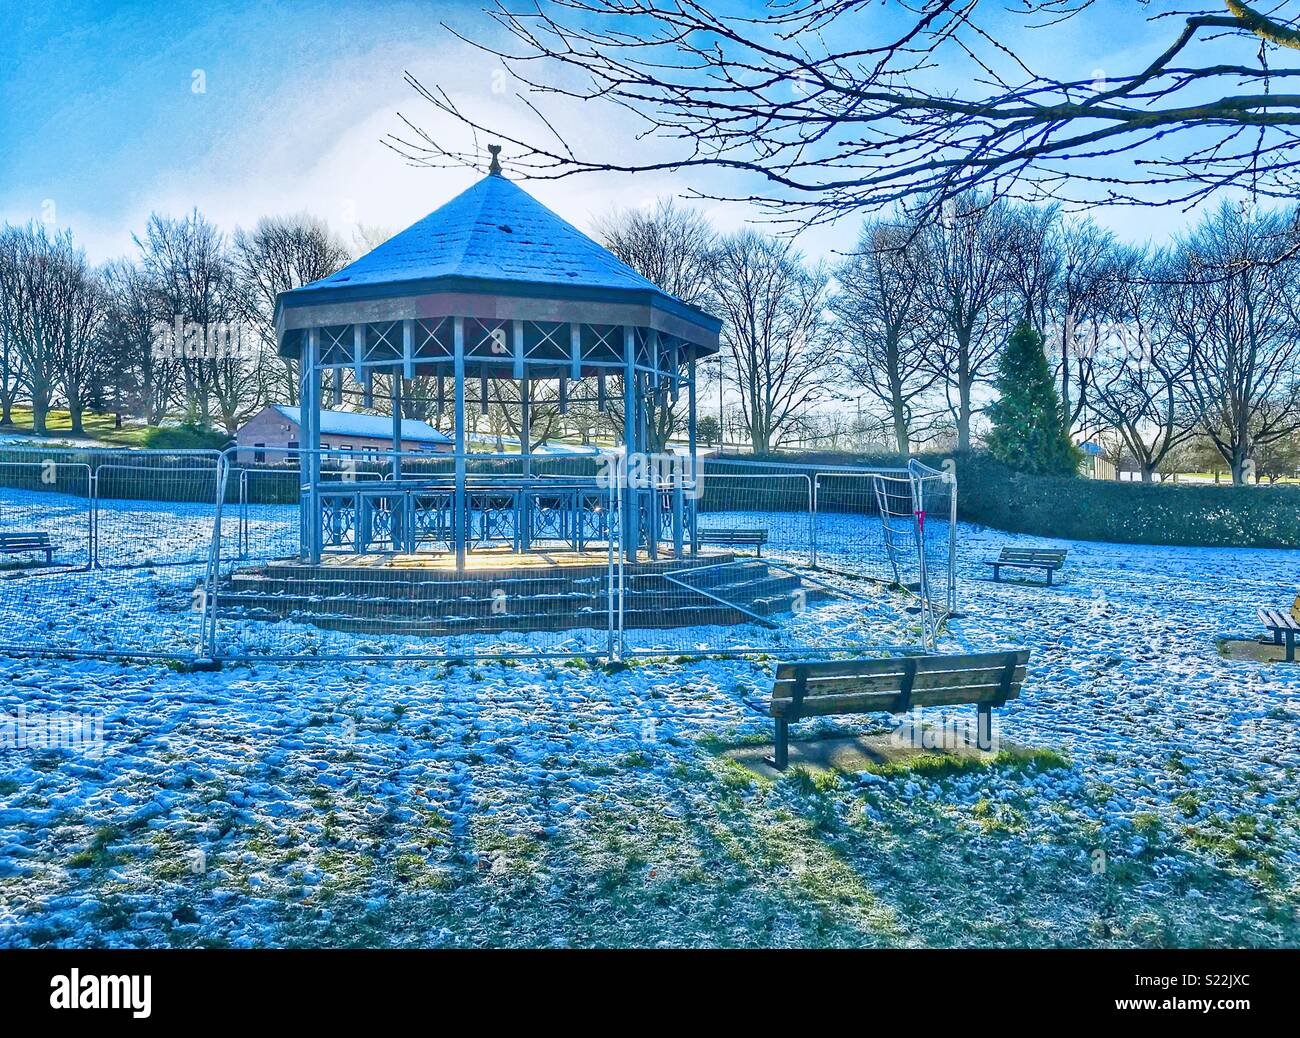 Disused bandstand - Stock Image